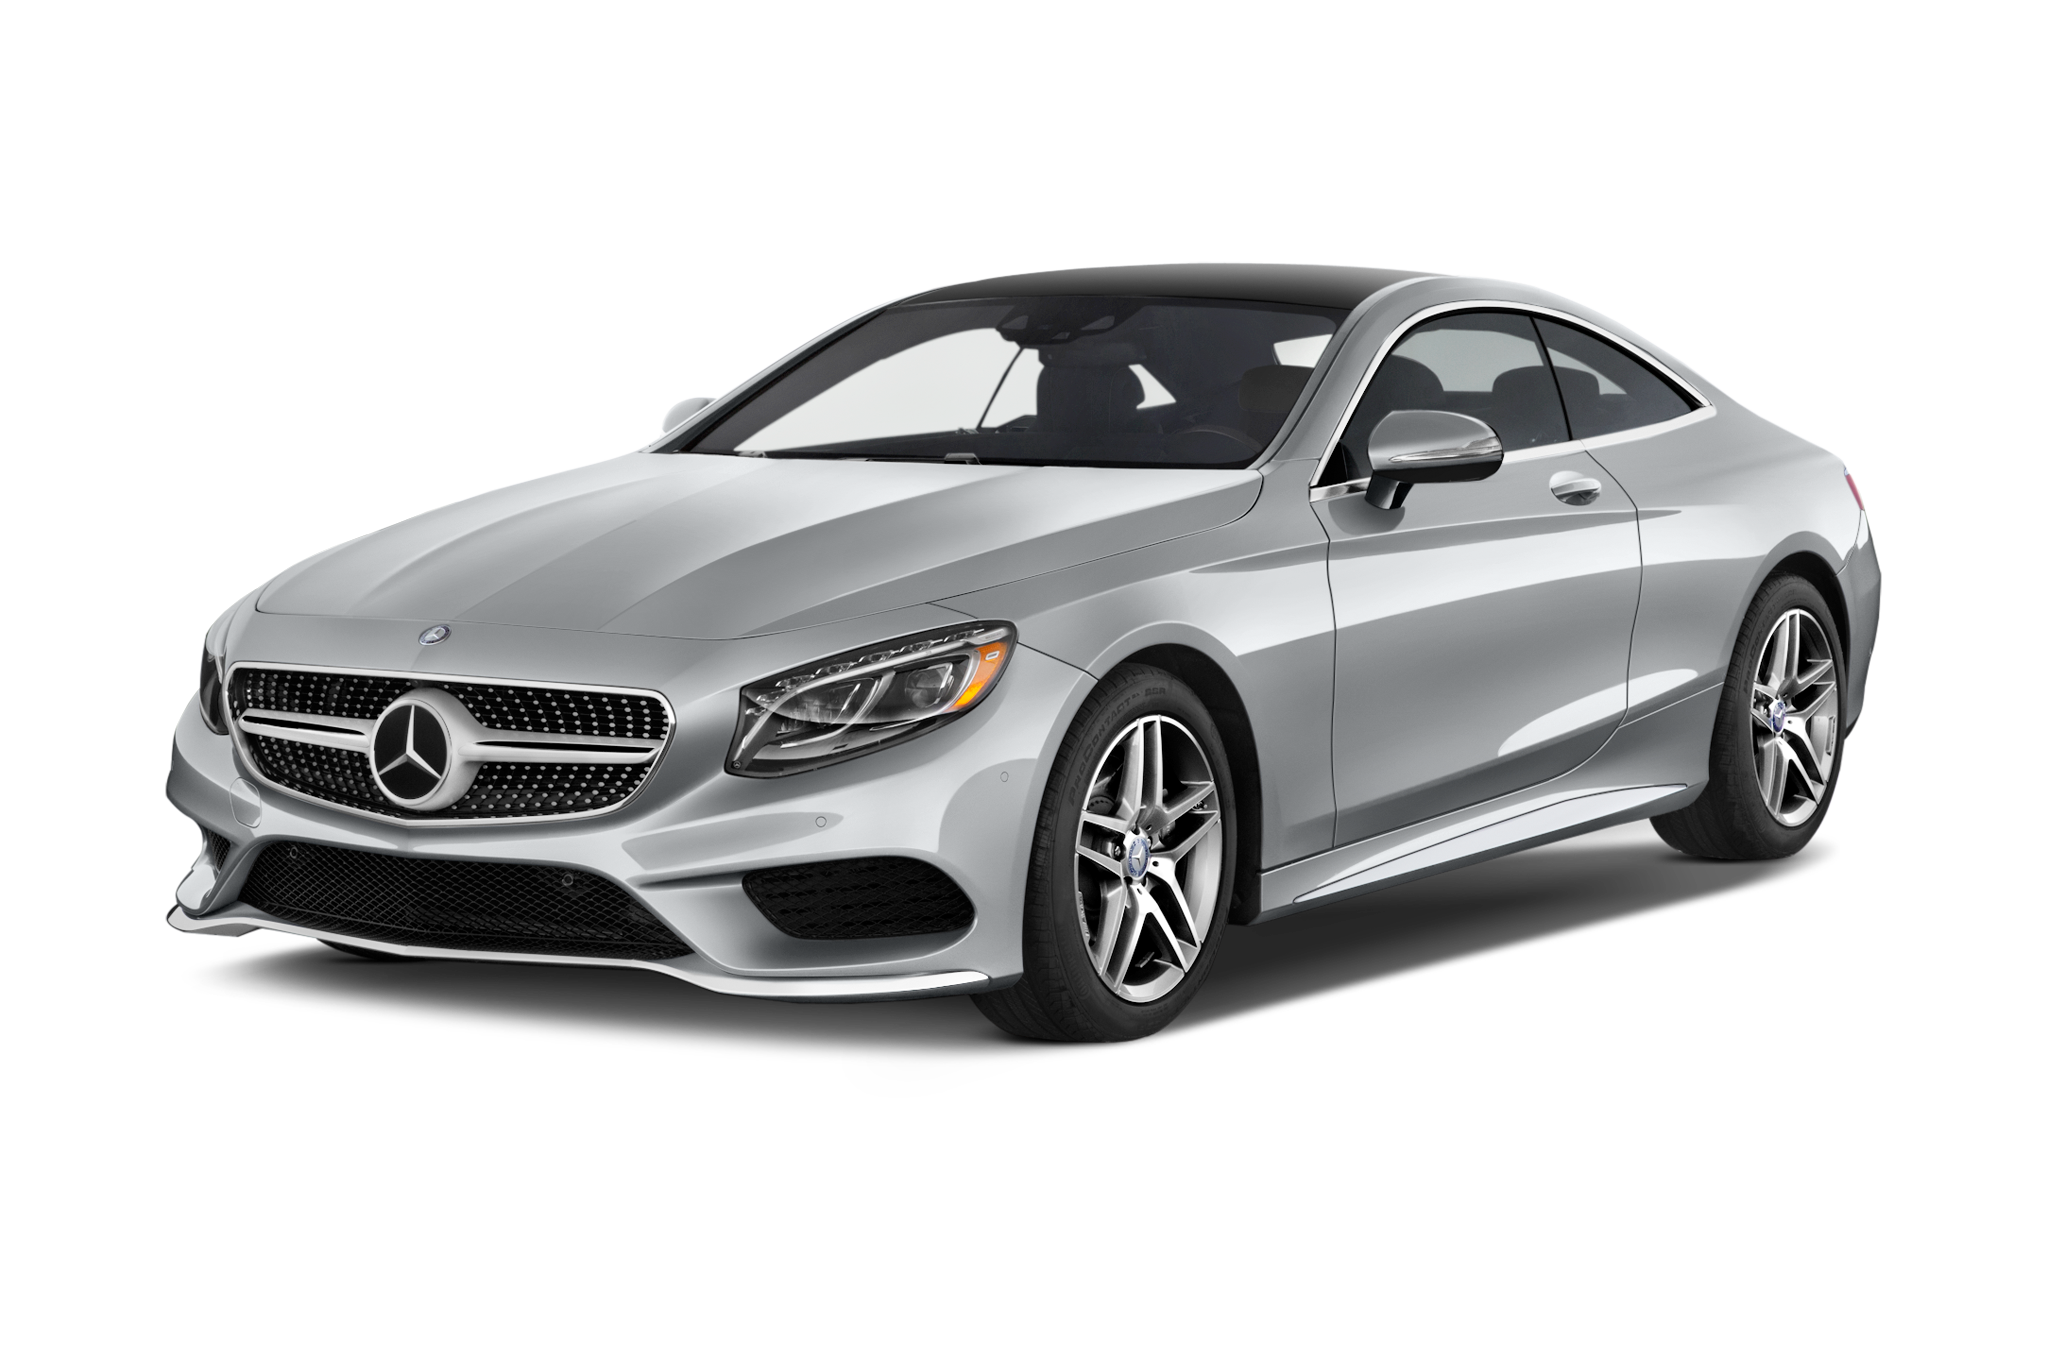 2015 Mercedes Benz S Class Reviews and Rating